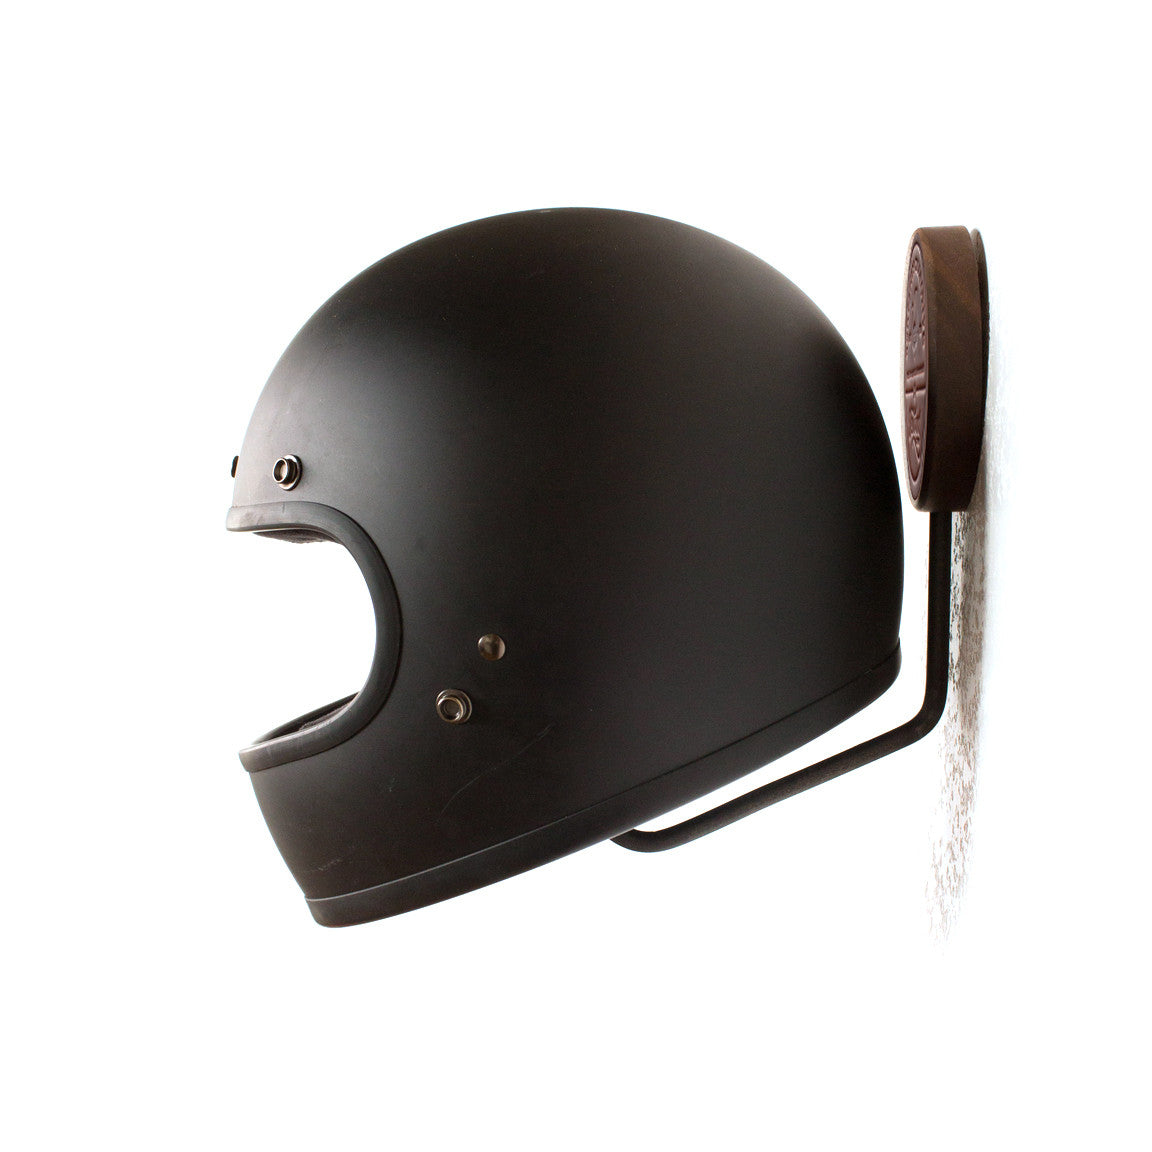 helmet rack, wood helmet rack, motorcycle helmet rack, metal helmet rack, leather and wood, metal and wood, westbound and red clouds